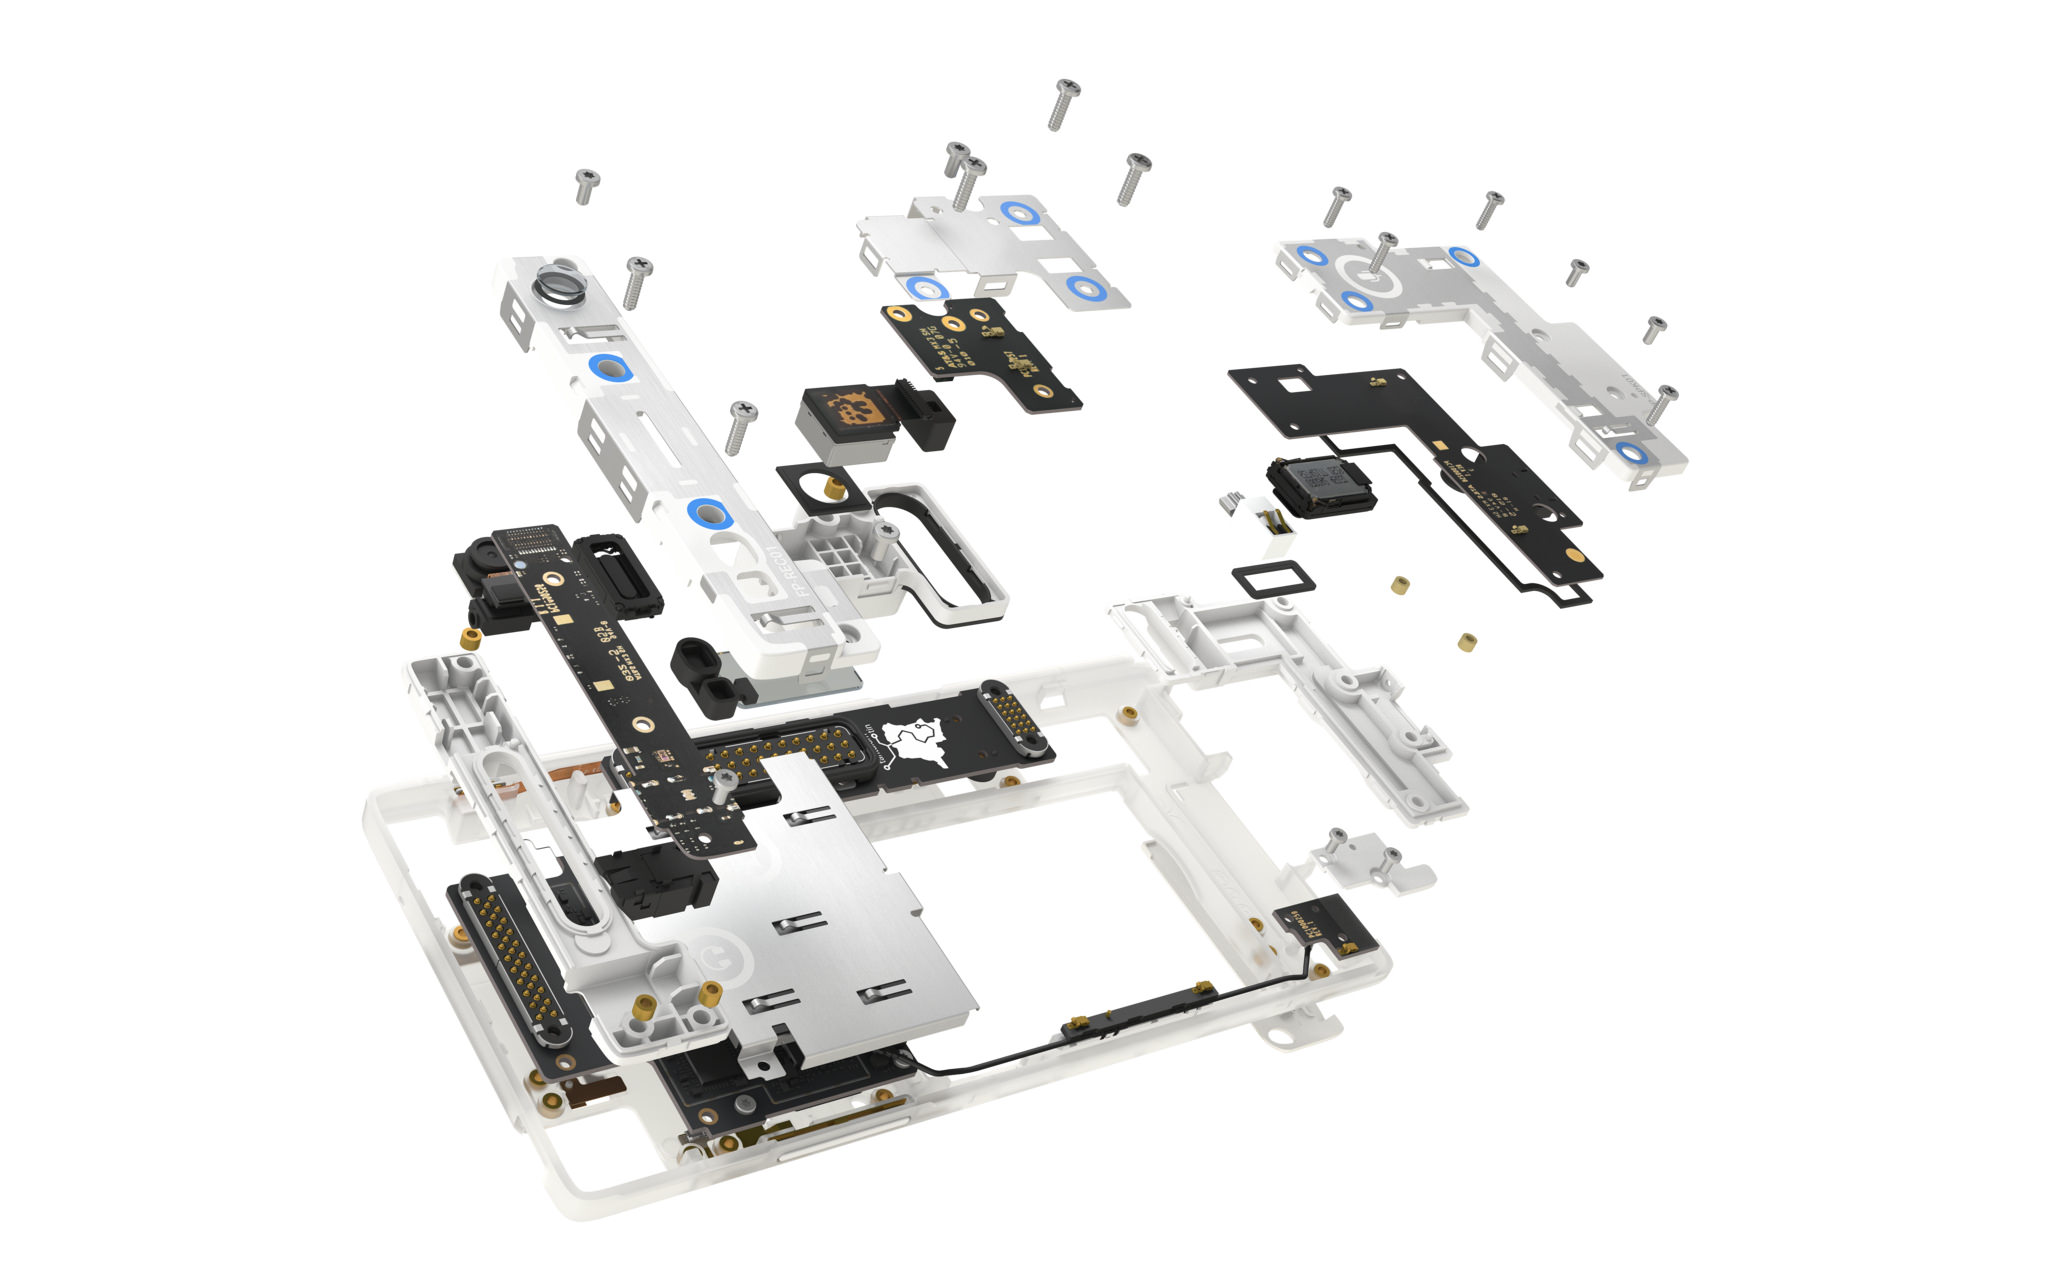 The Fairphone 2, exploded view of modular architecture